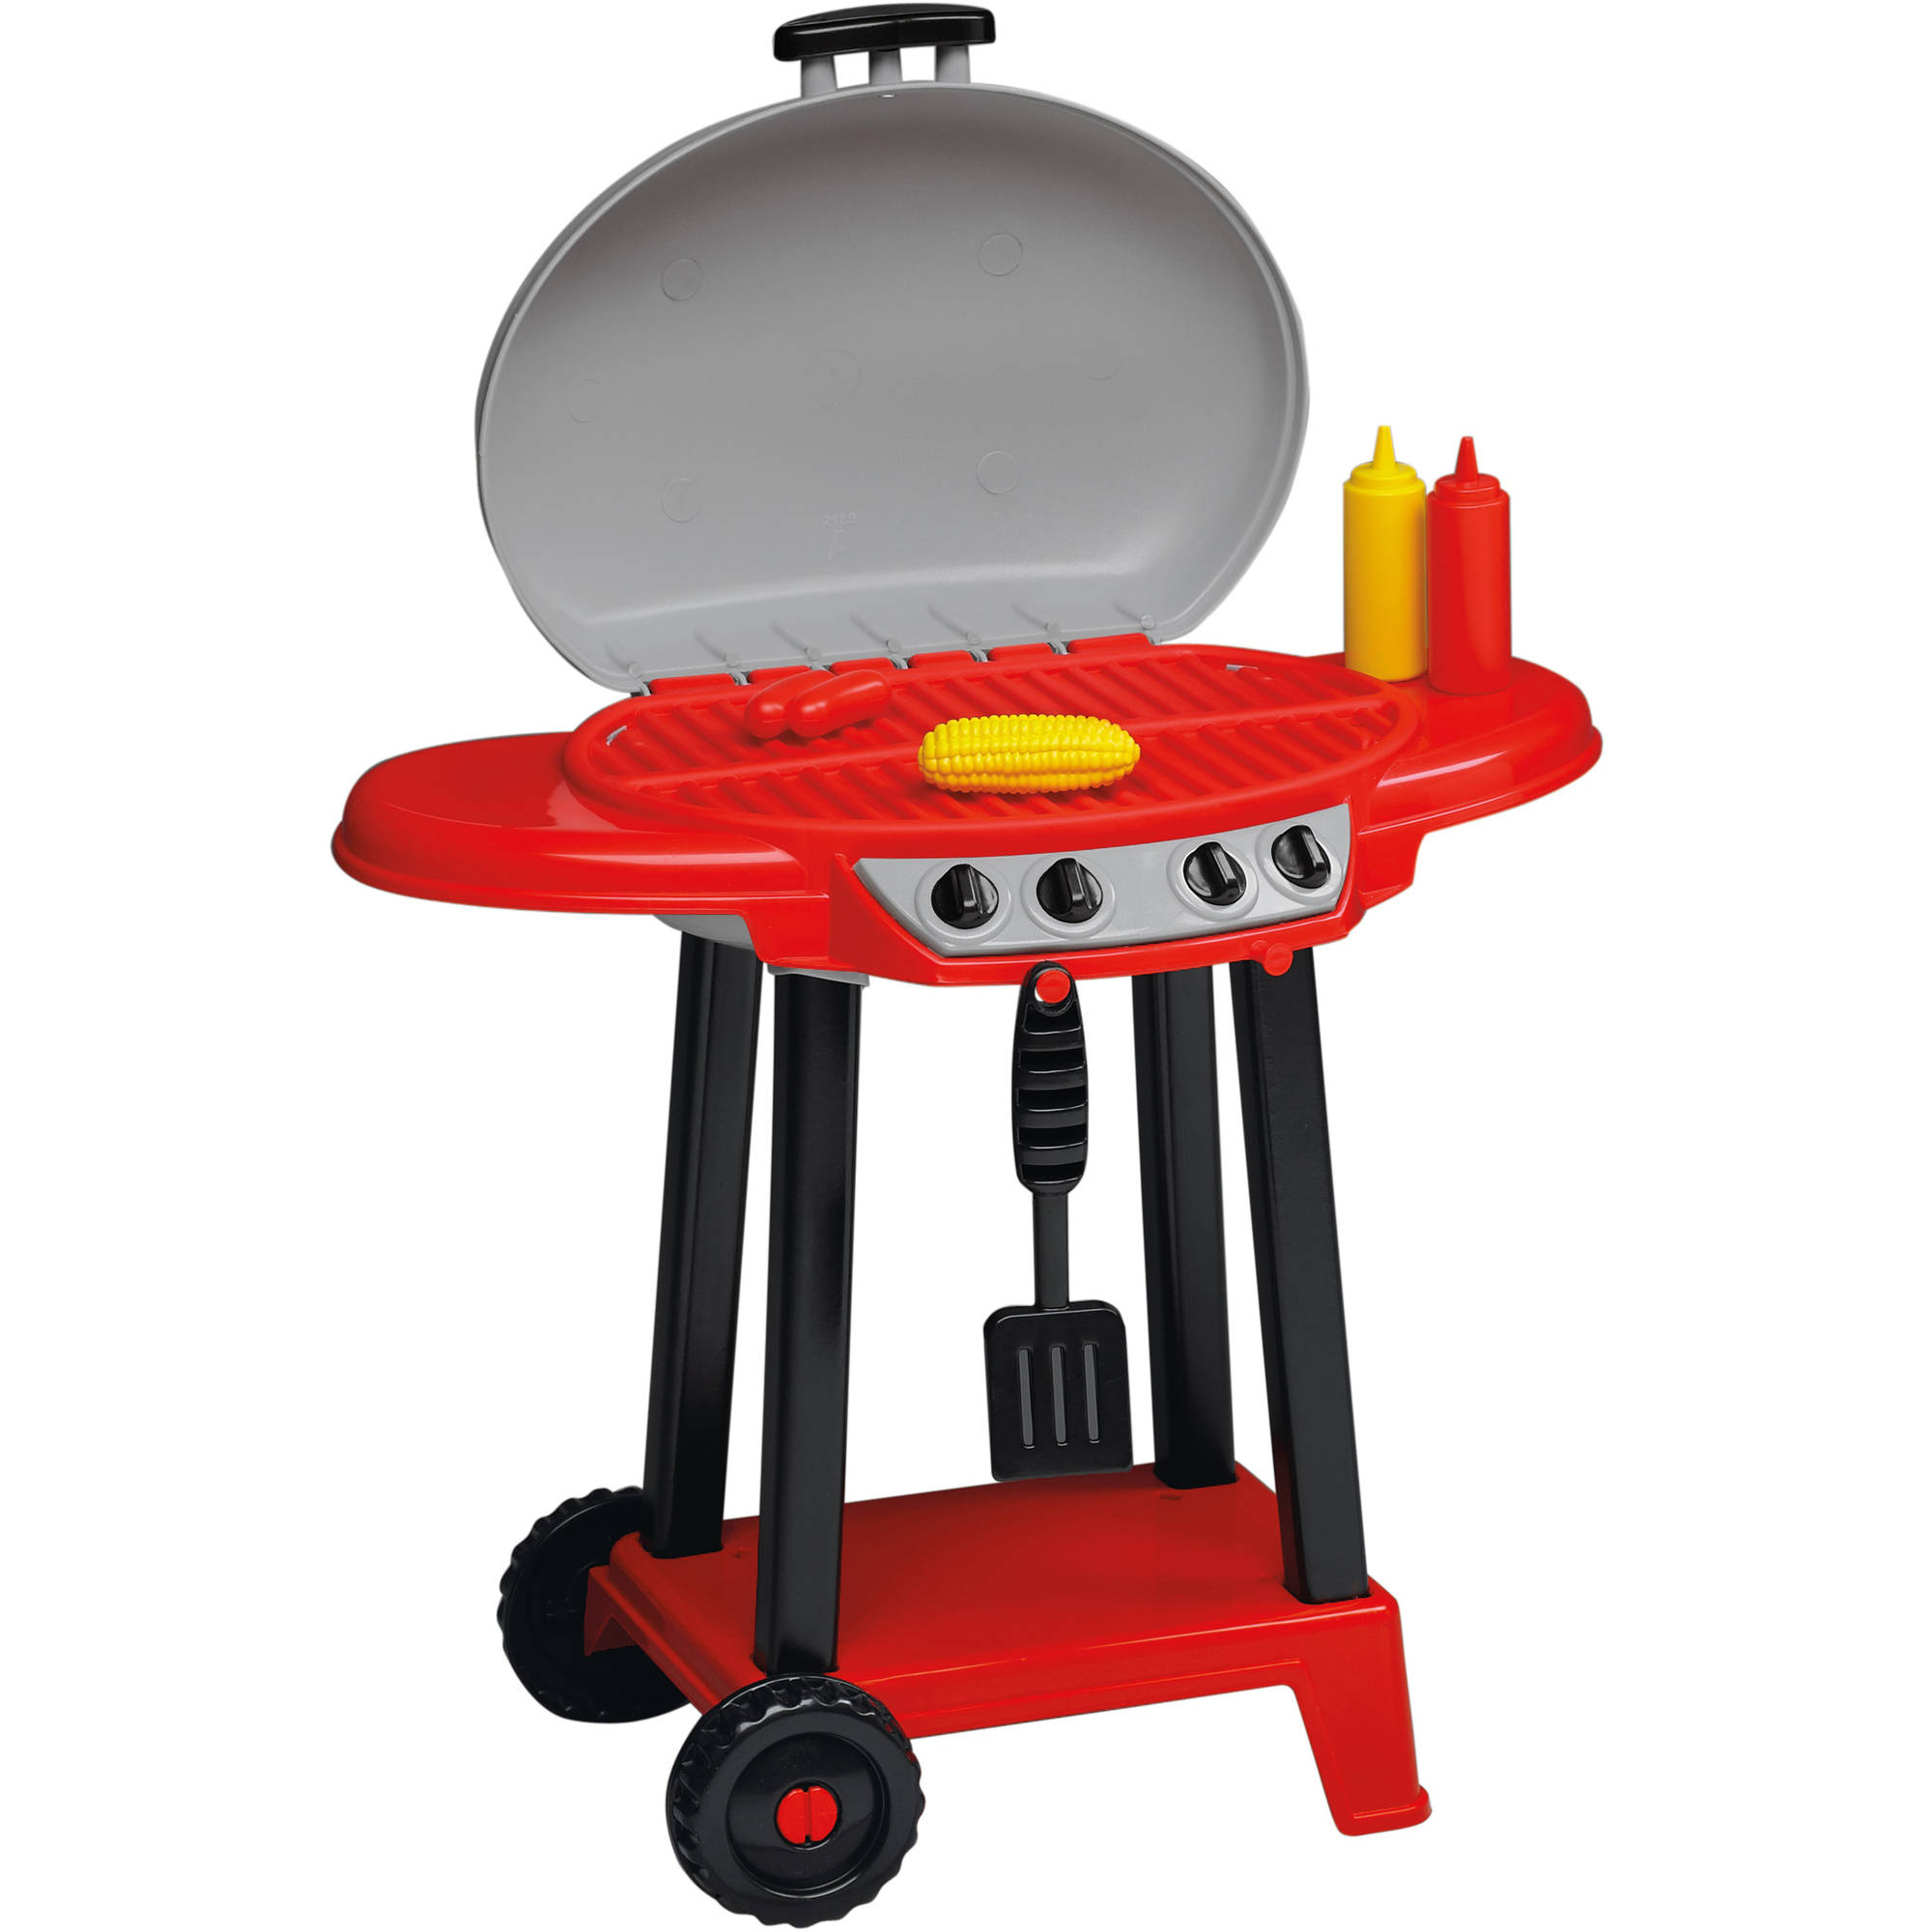 Magnificent American Plastic Toys My Very Own Grill Walmart Inventory Download Free Architecture Designs Lukepmadebymaigaardcom